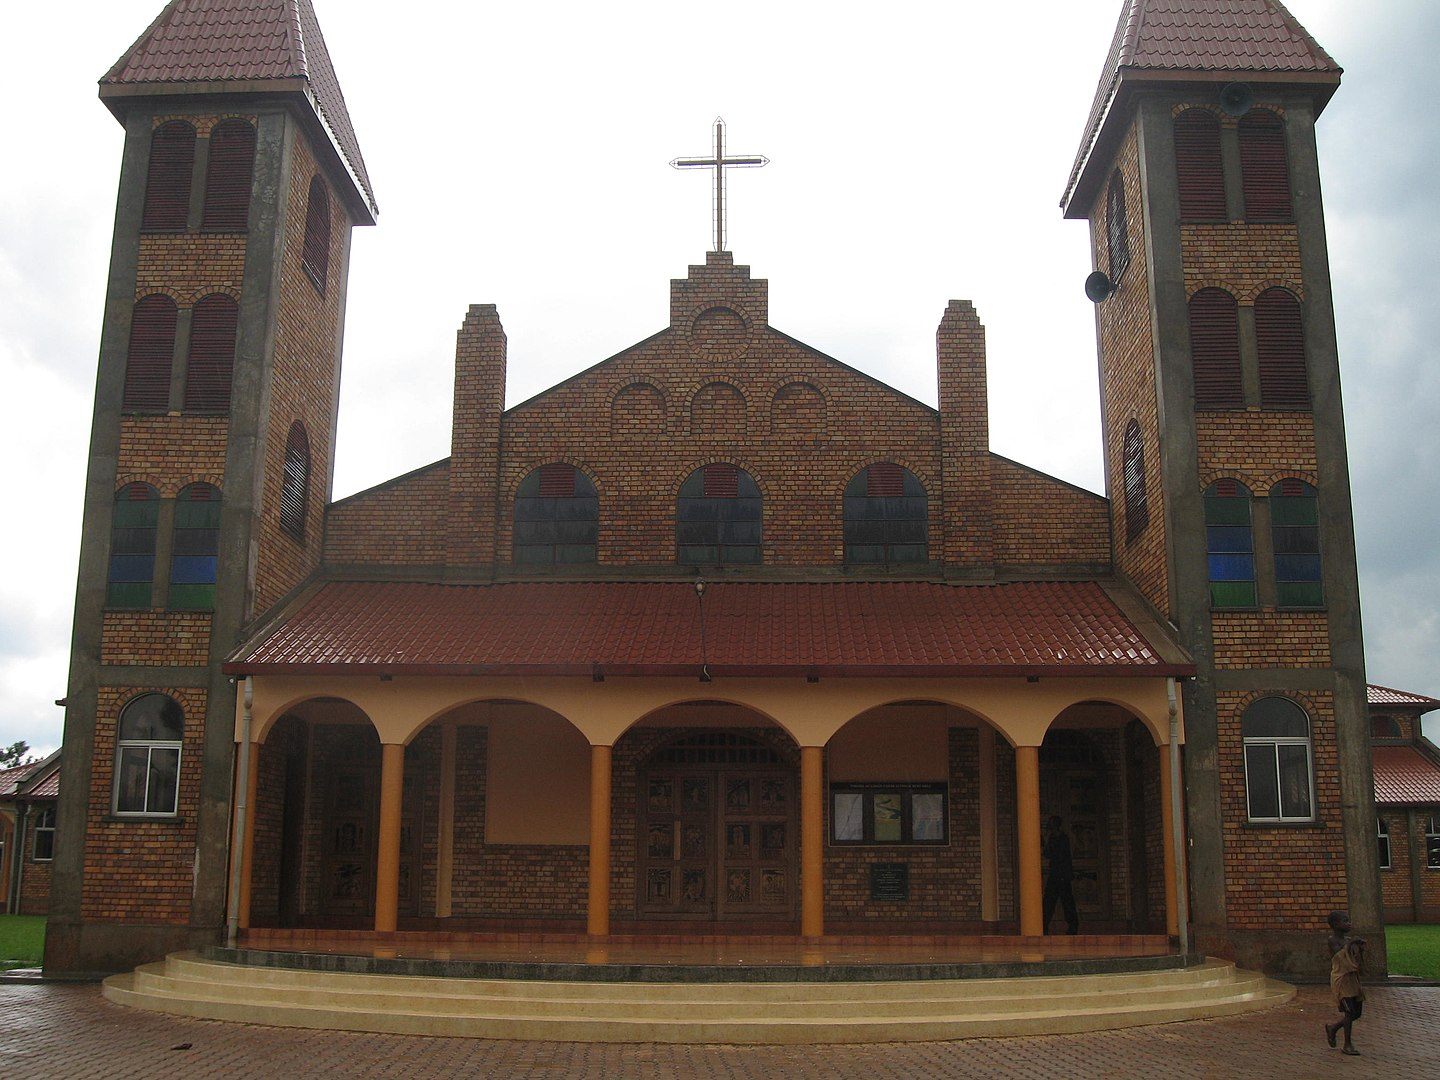 Cathedral of Our Lady Queen of Peace